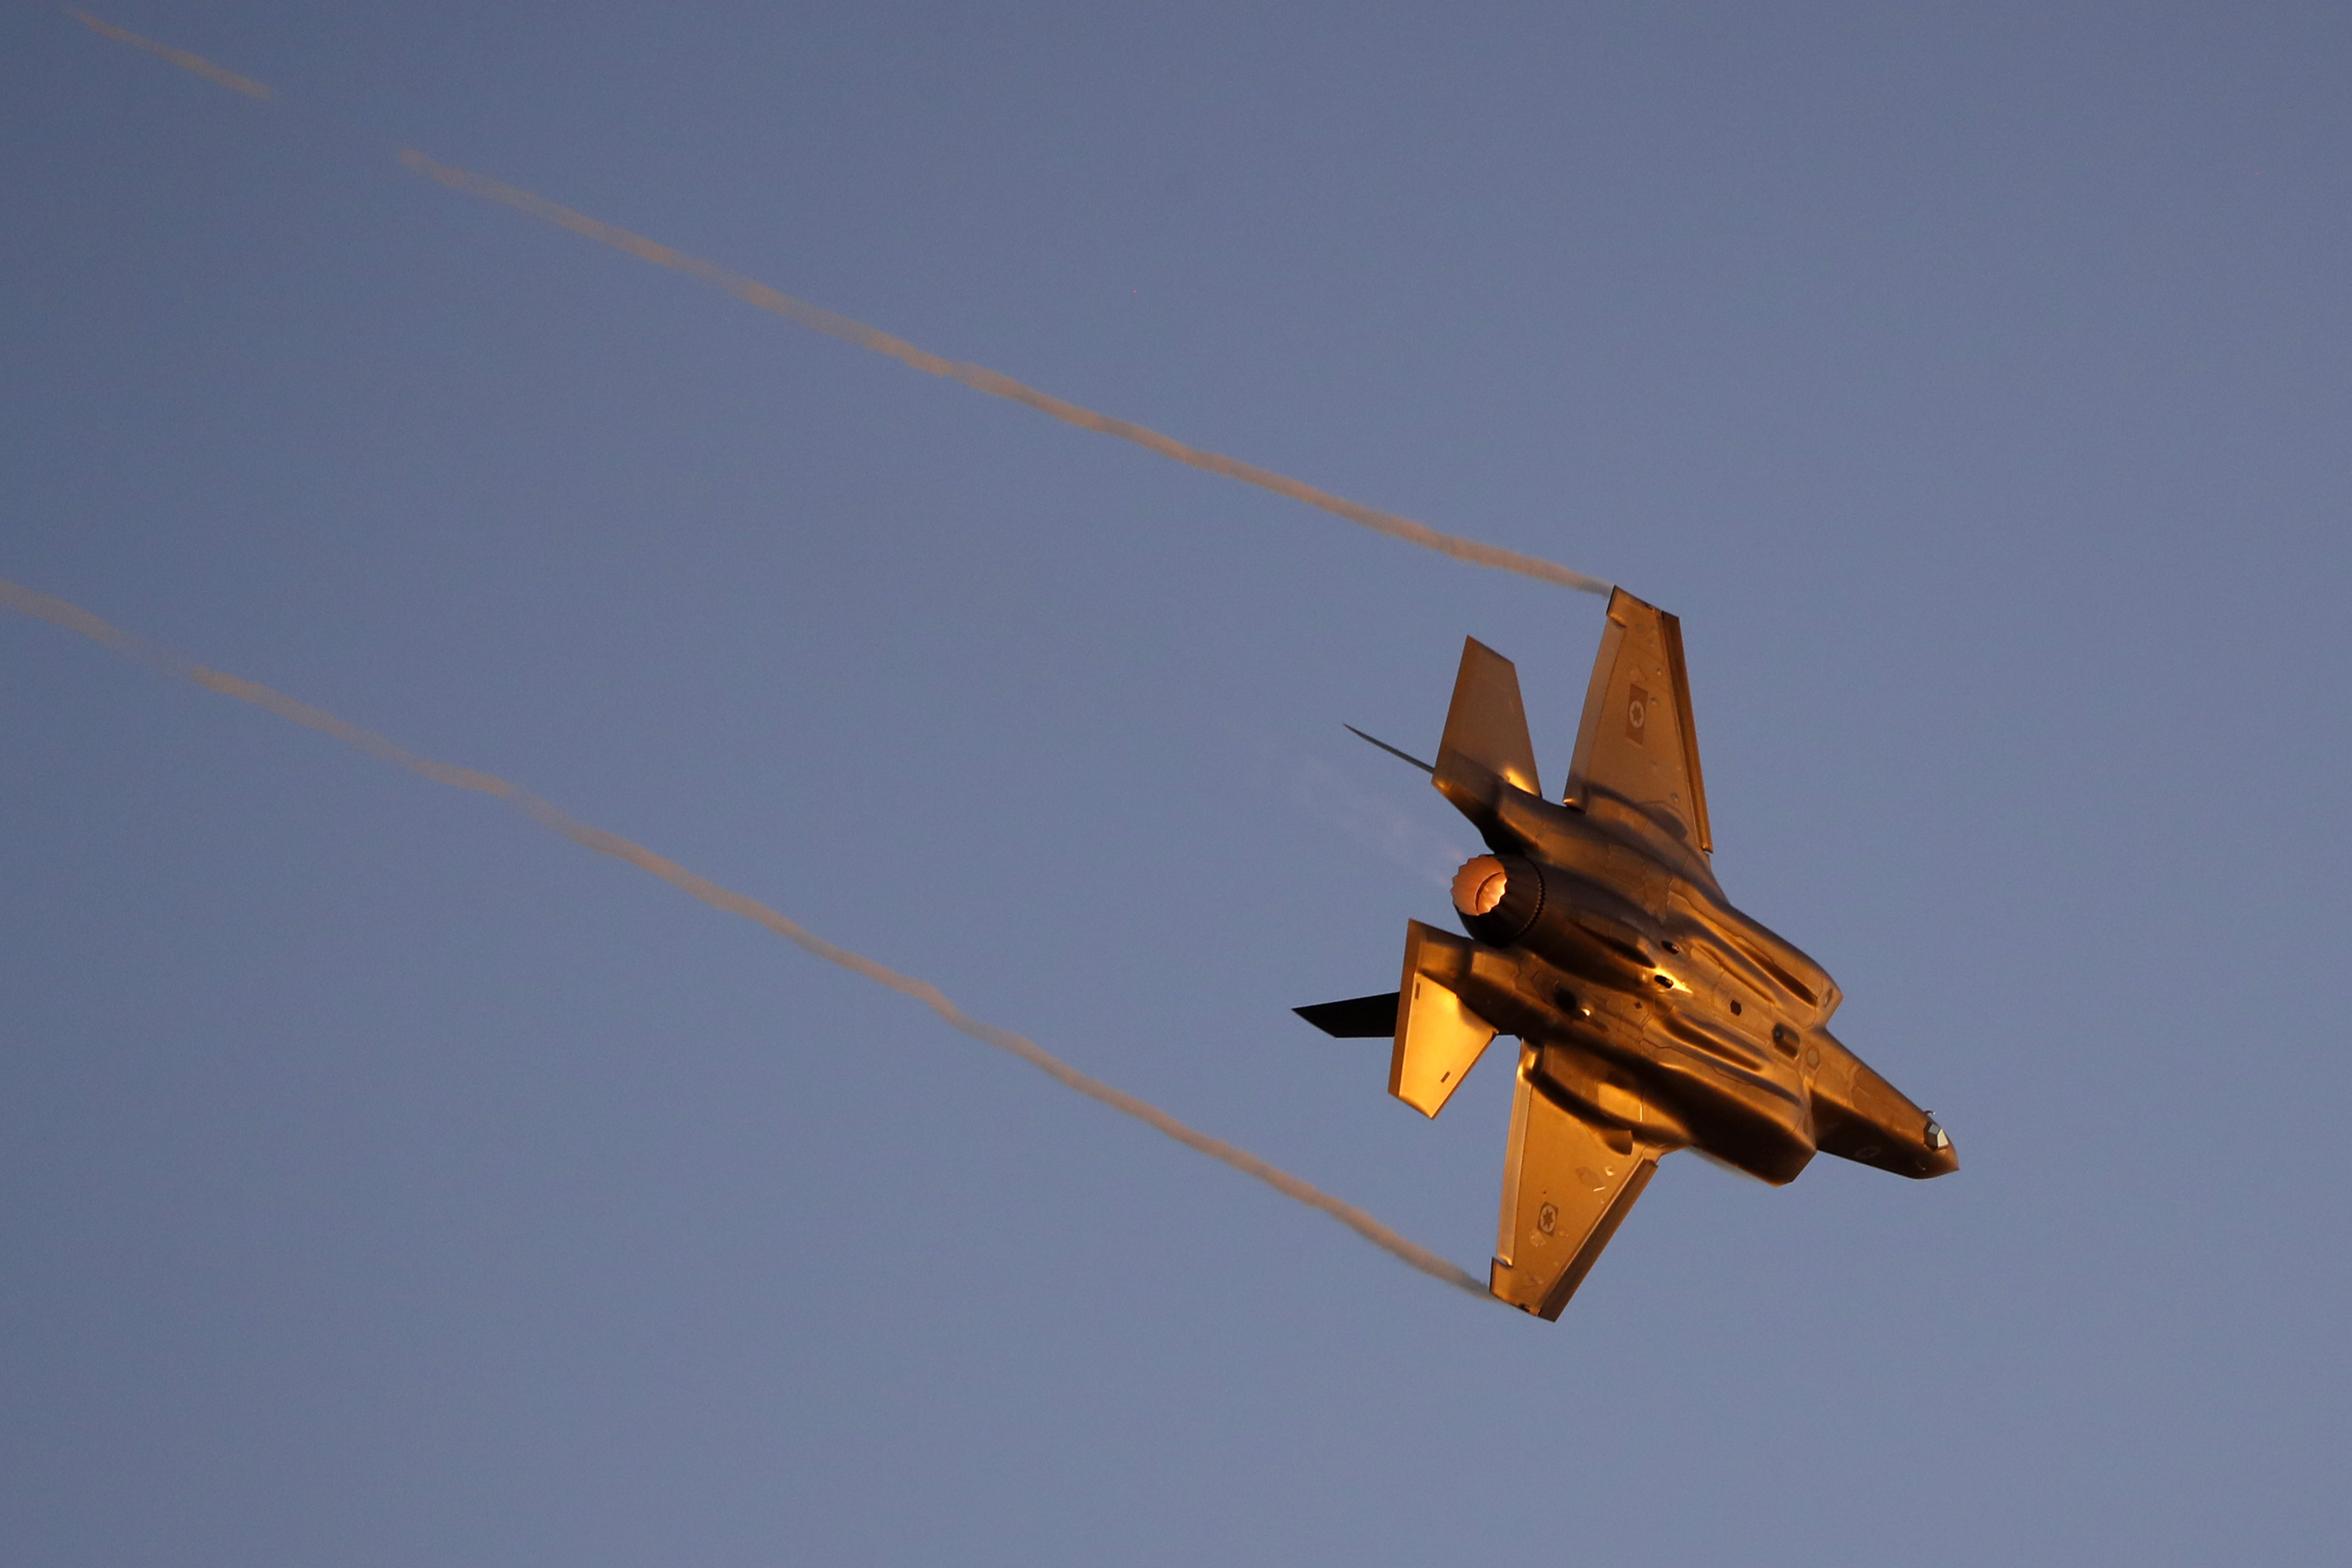 An Israeli F-35 fighter jet performs during an air show at the graduation ceremony of Israeli pilots. (Jack Guez/AFP via Getty Images)